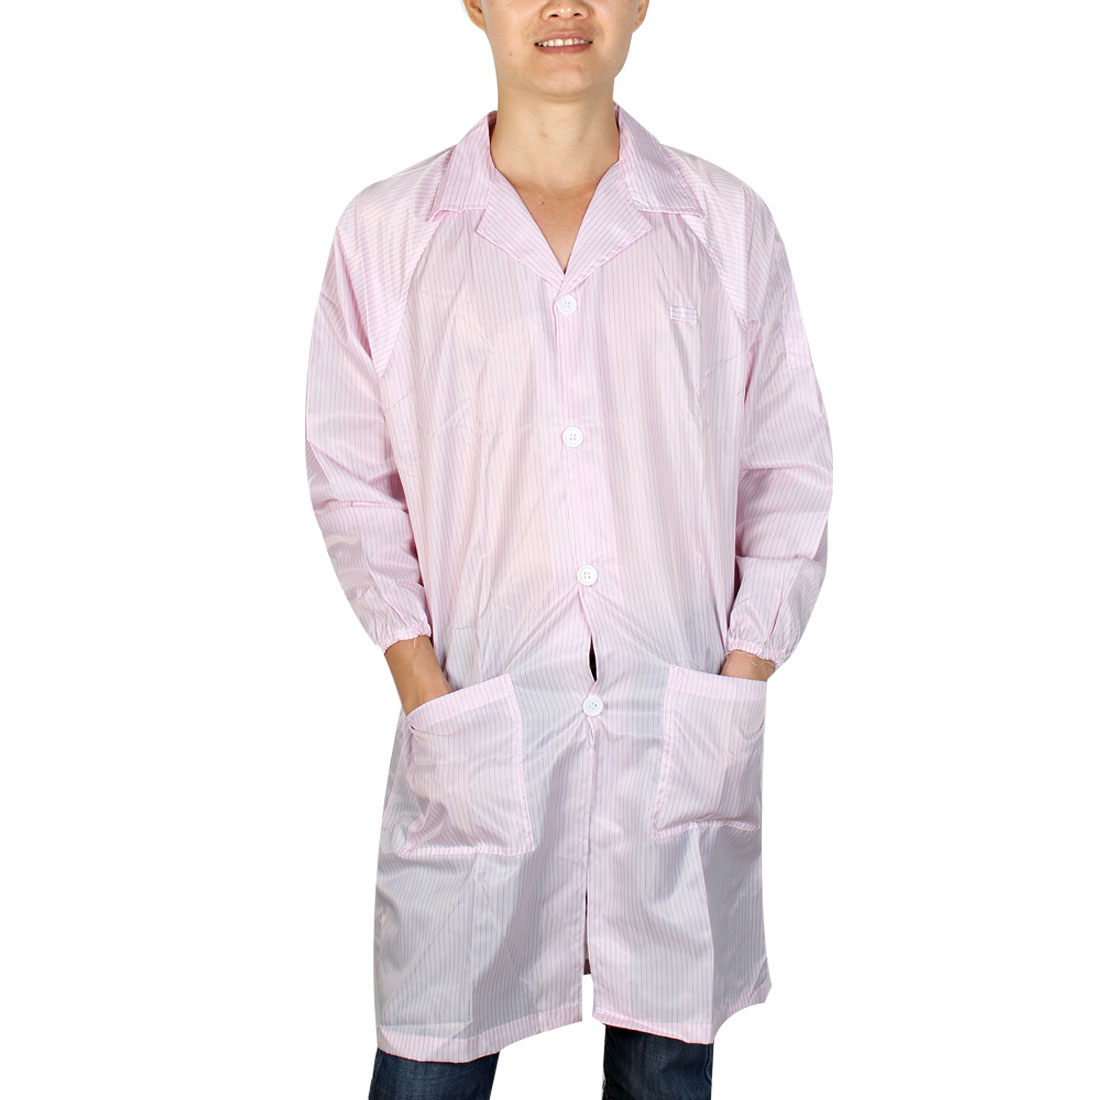 Unisex Long Sleeve Stripes Pattern Anti Static Overalls Coat Pink L